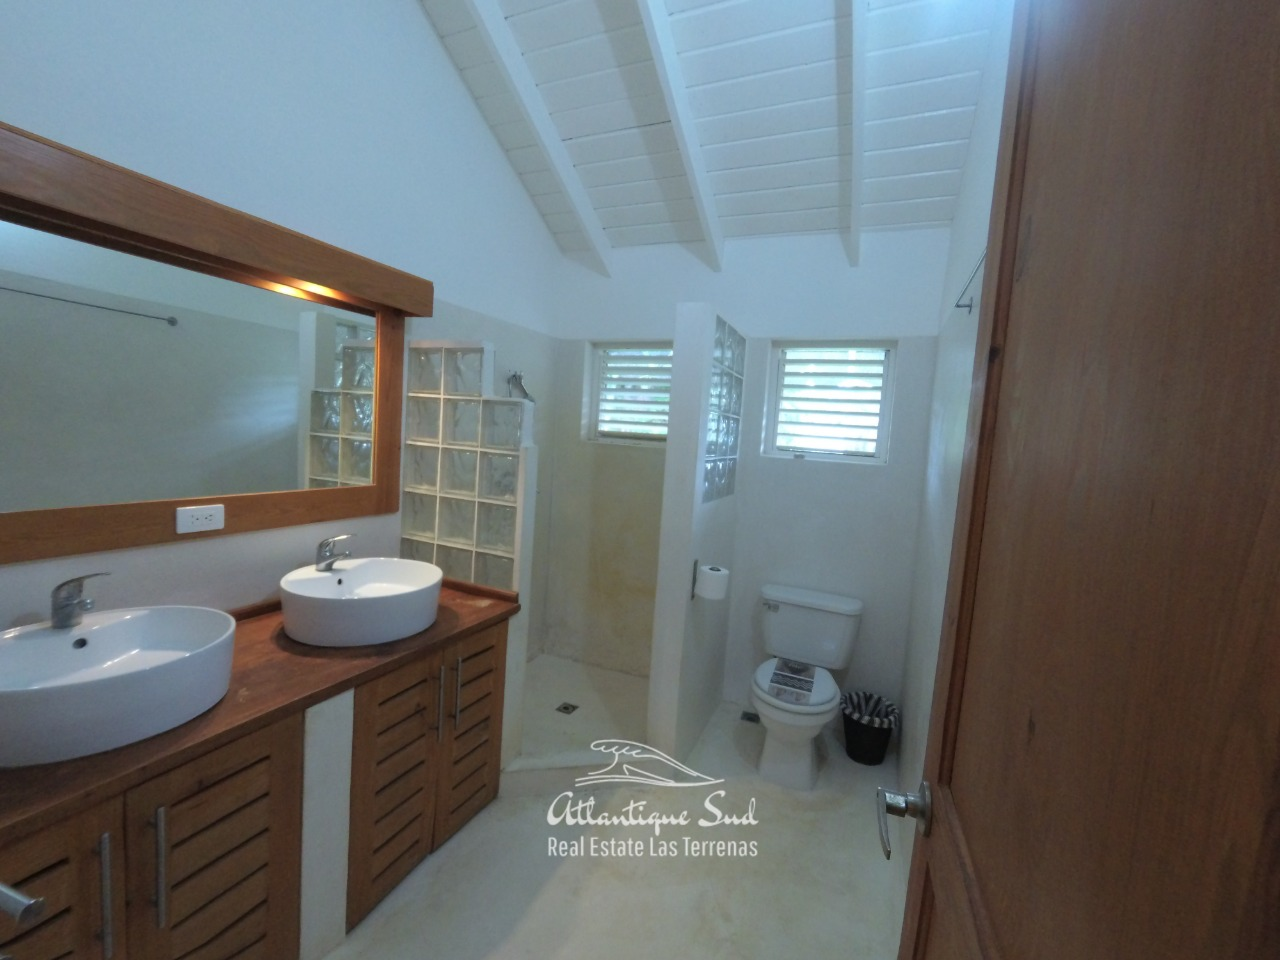 Villa for sale steps from the beach in las terrenas 3.jpeg